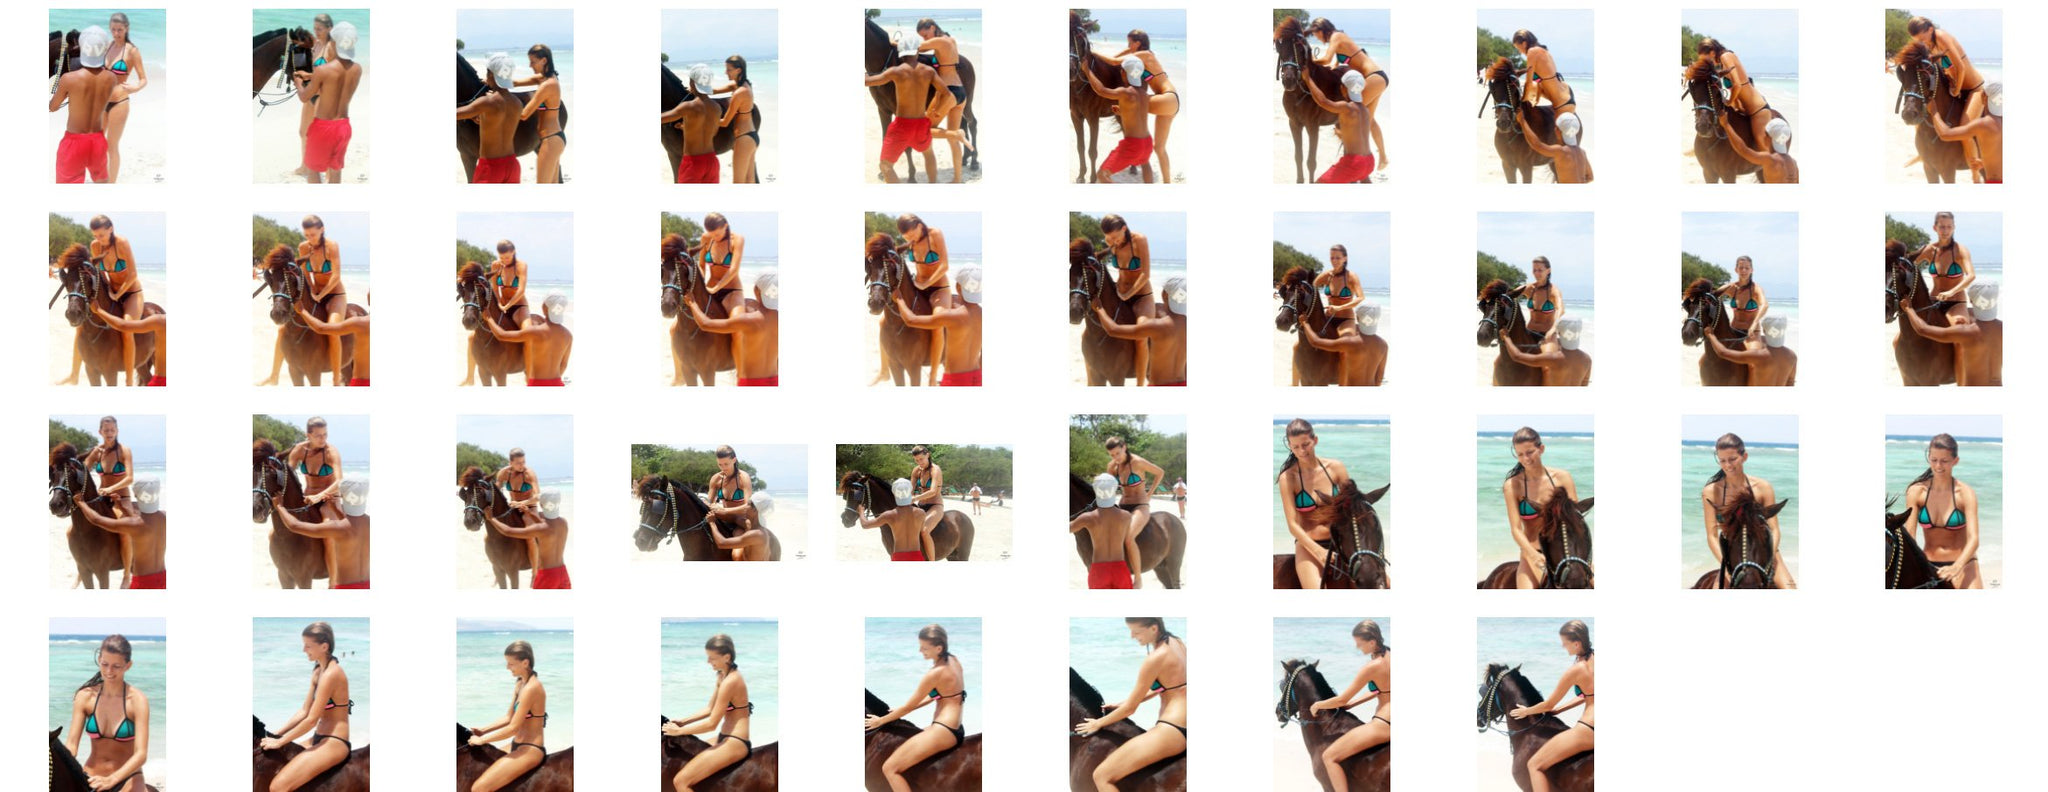 Madison in Bikini Riding Bareback on Brown Pony, Part 1 - Riding.Vision